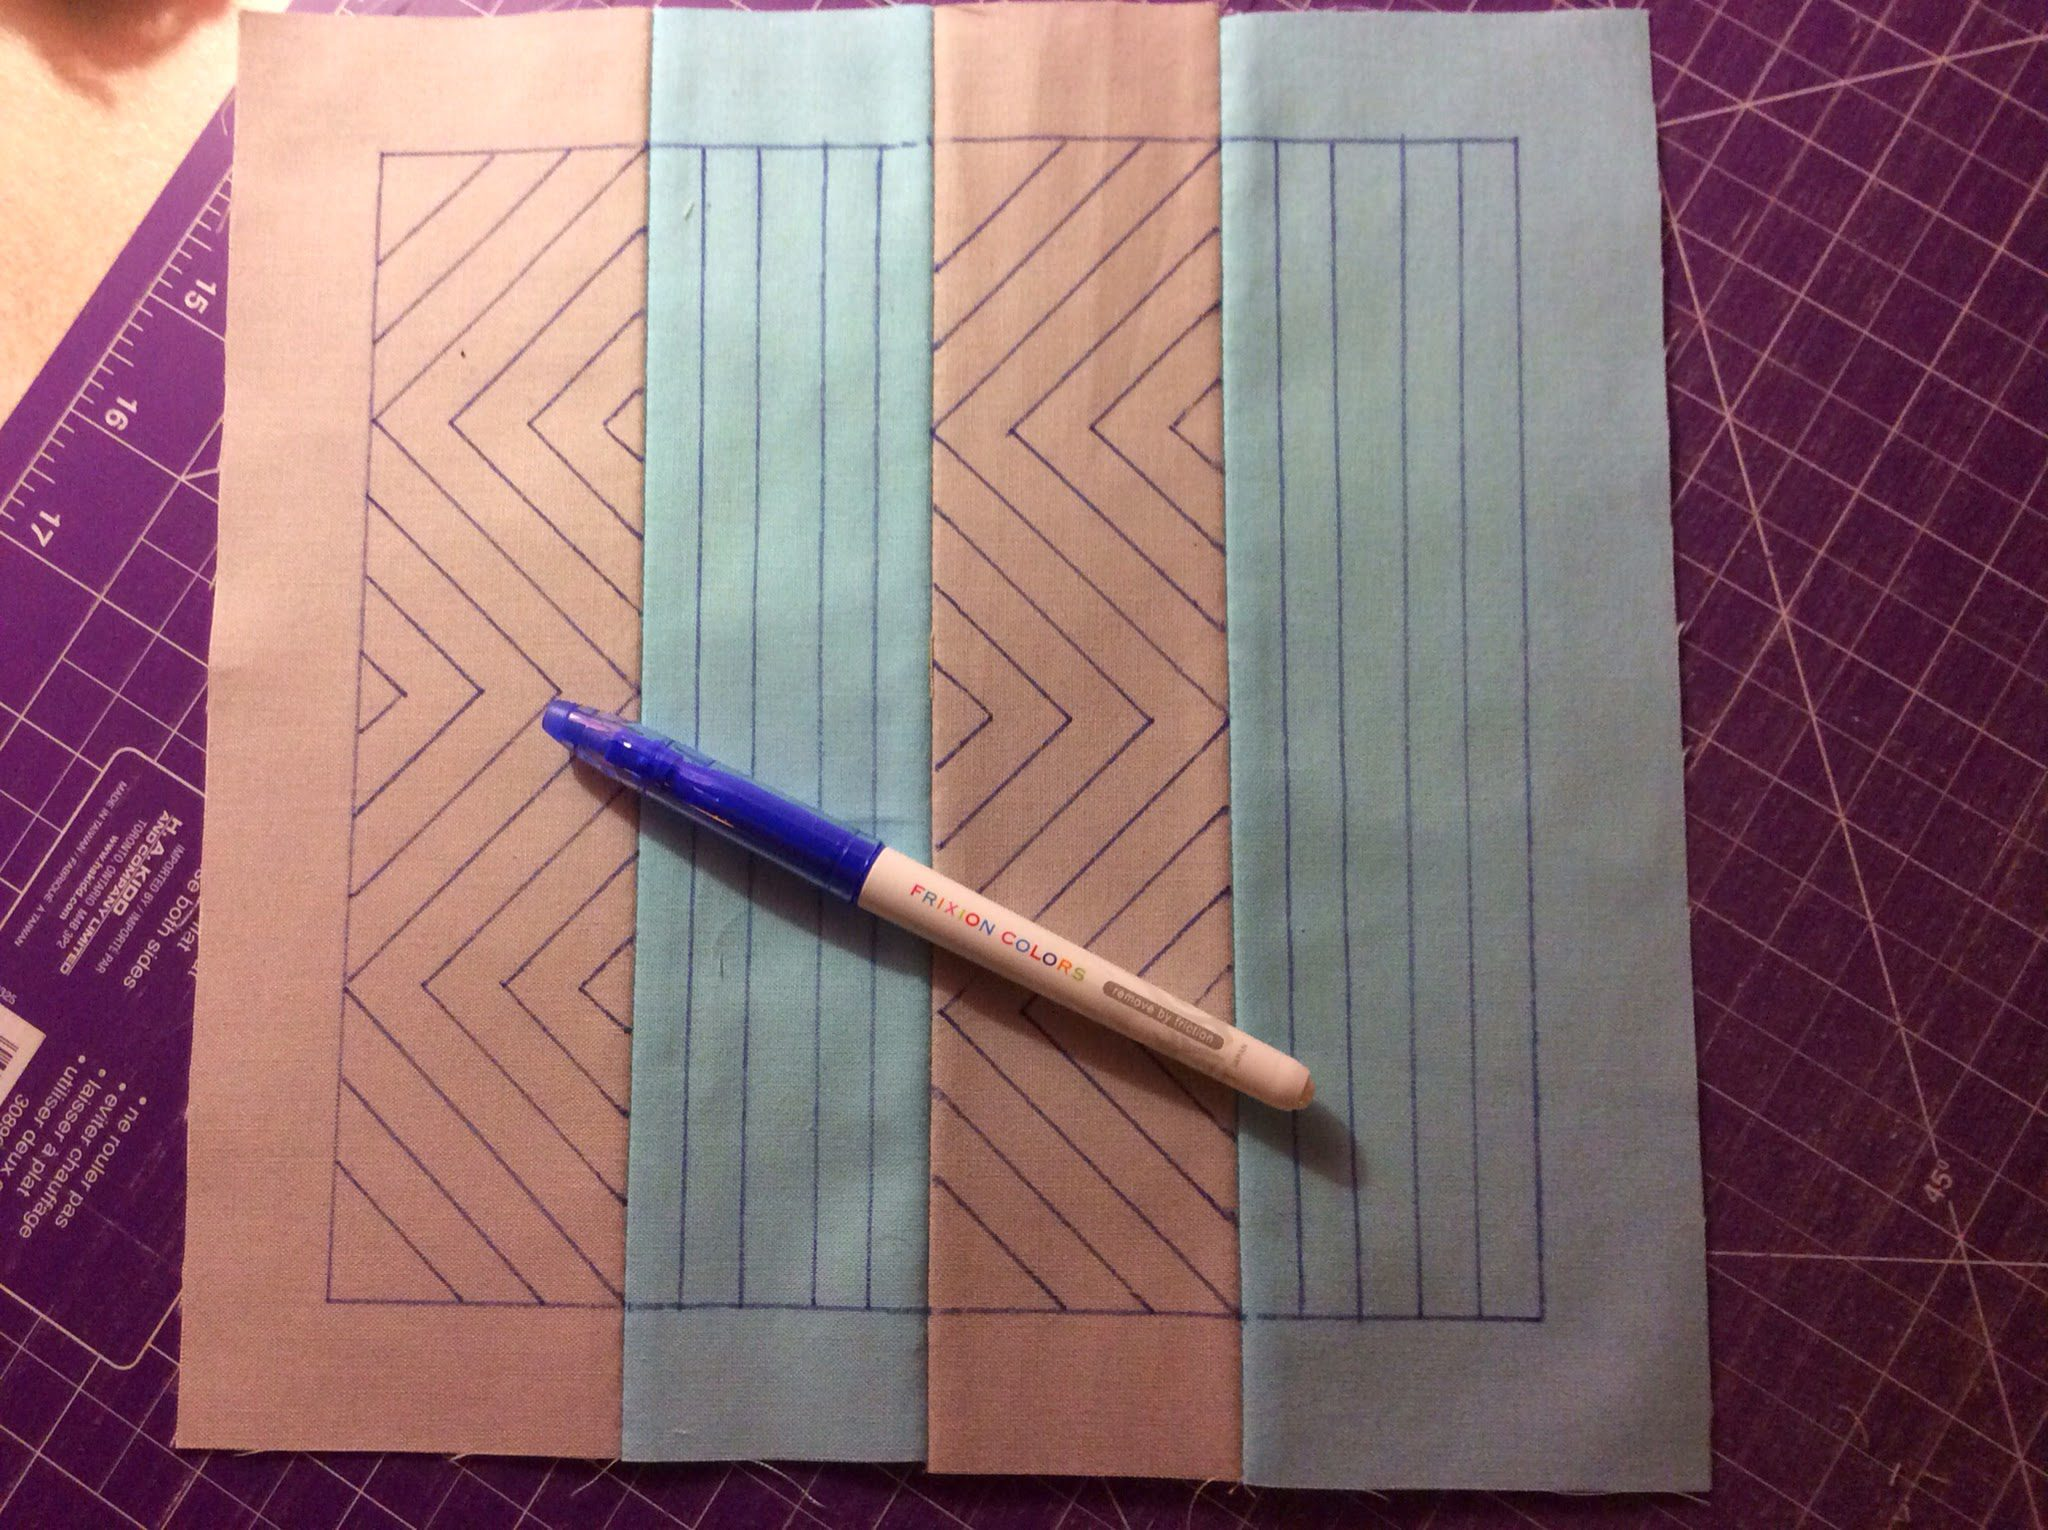 Blue pen on quilt